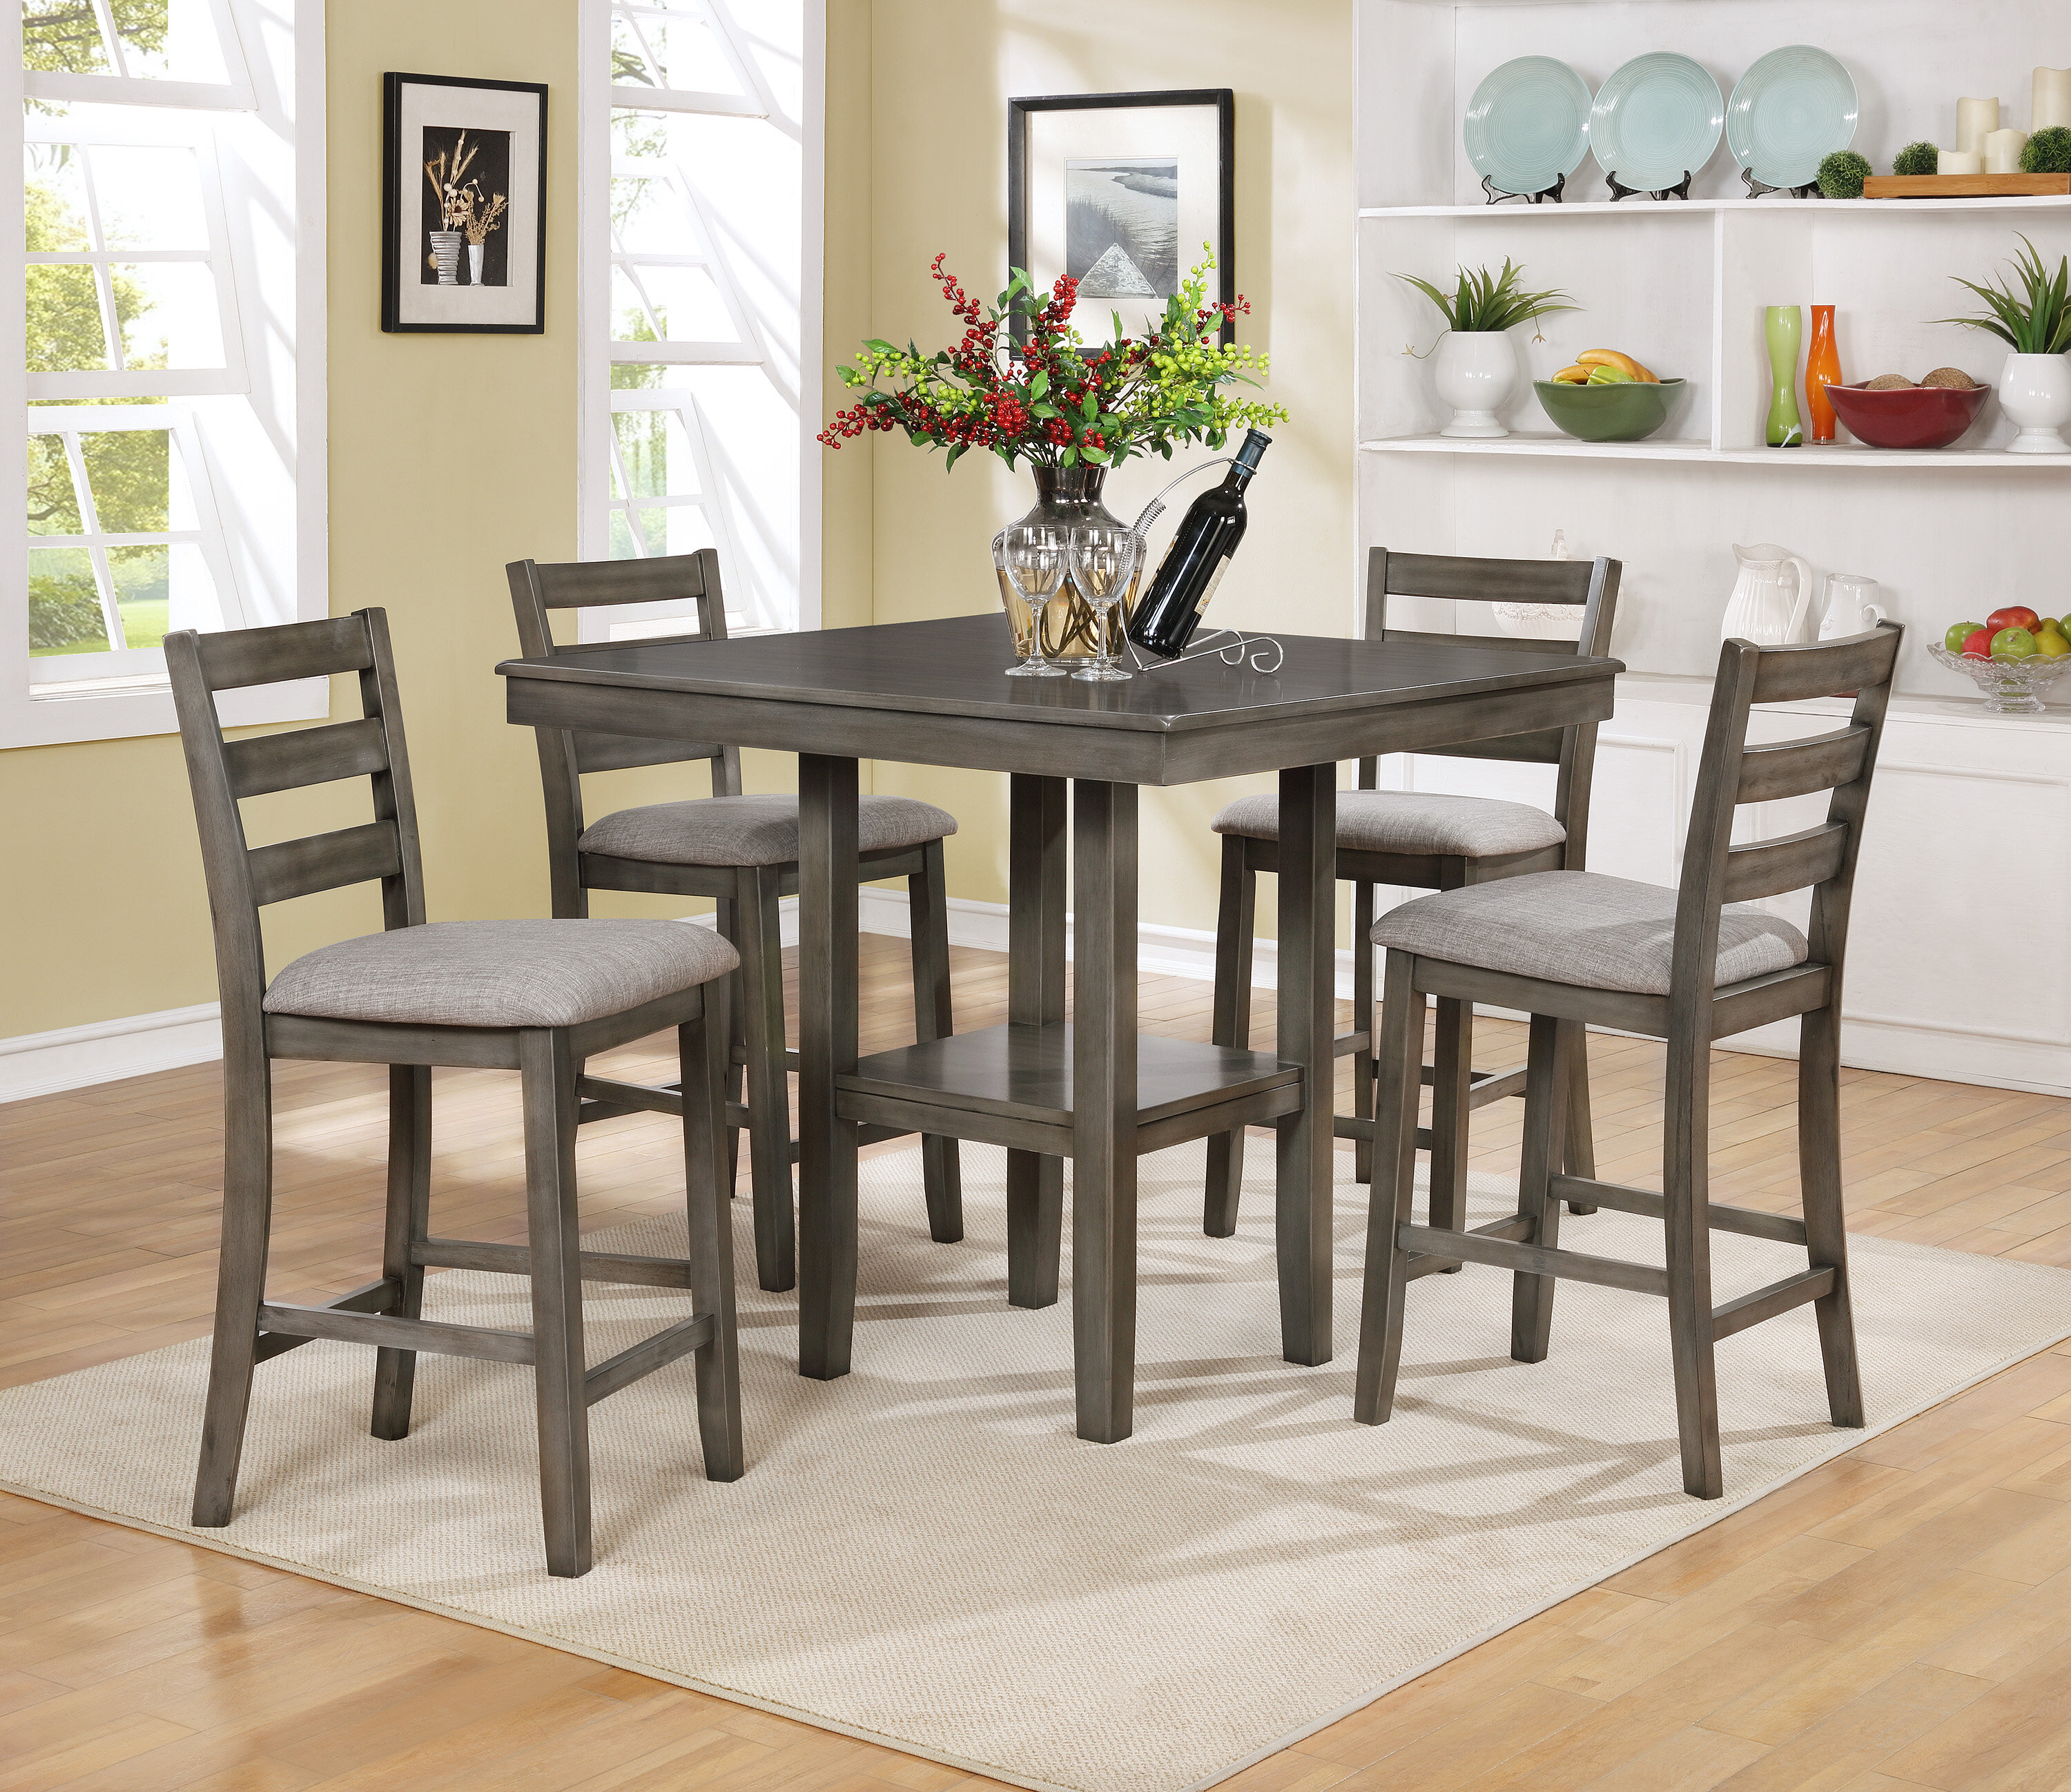 & Crown Mark Tahoe 5 Piece Counter Height Dining Set u0026 Reviews | Wayfair